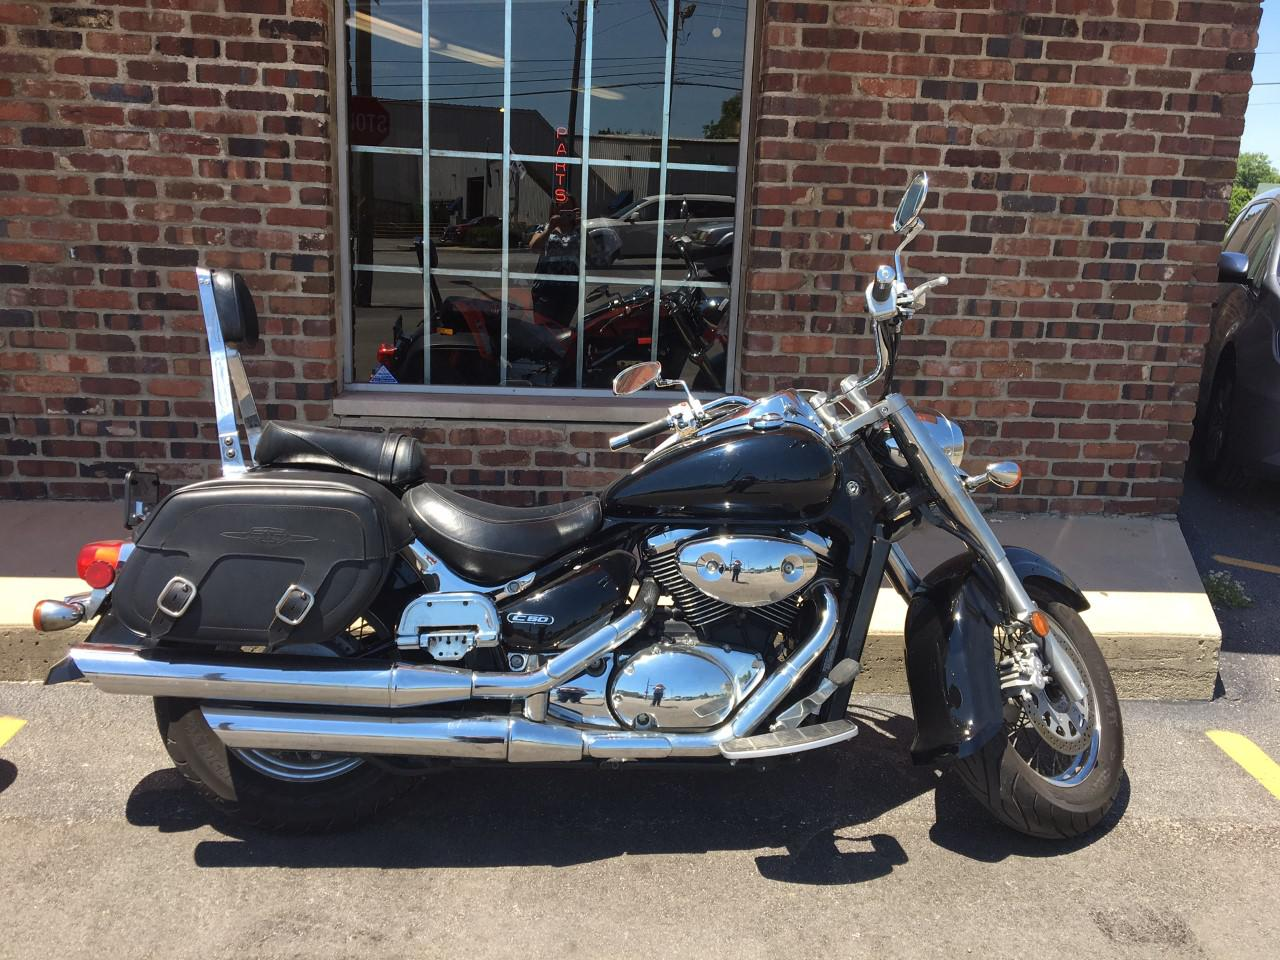 2007 suzuki boulevard c50 for sale in indianapolis, in | dreyer